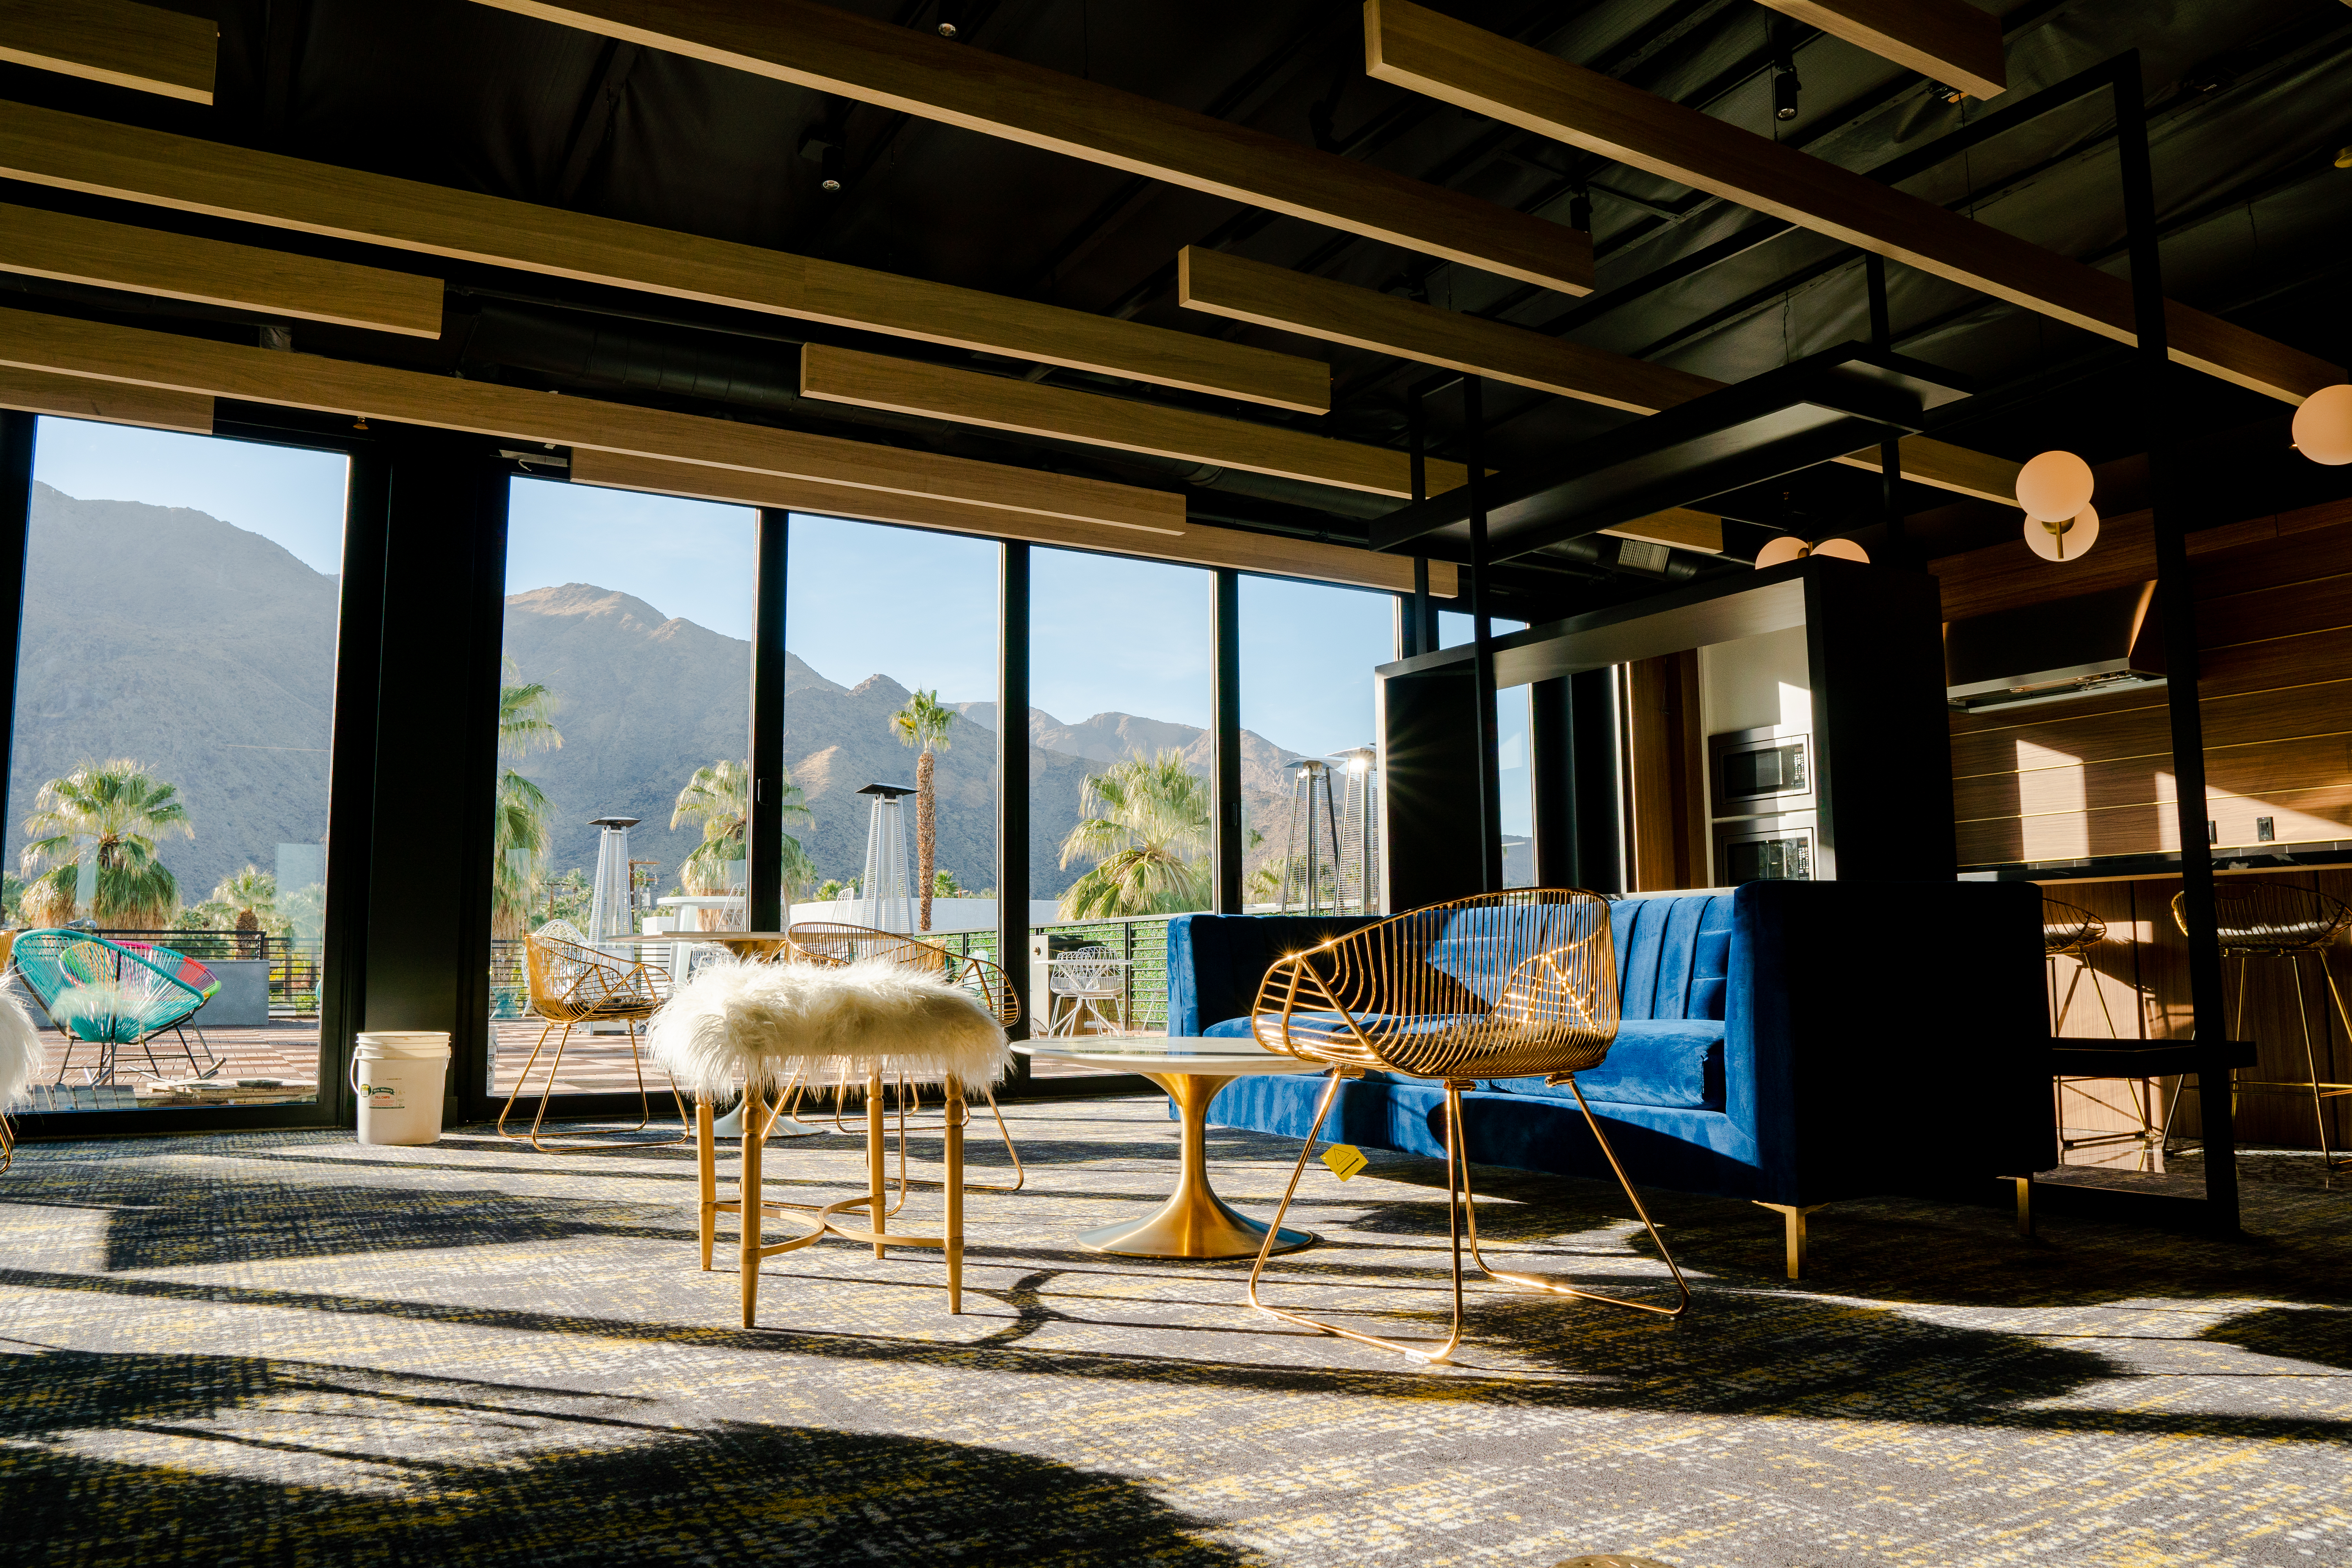 The Flannery Exchange - Luxury Events Space with a View of San Joaquin Mountains